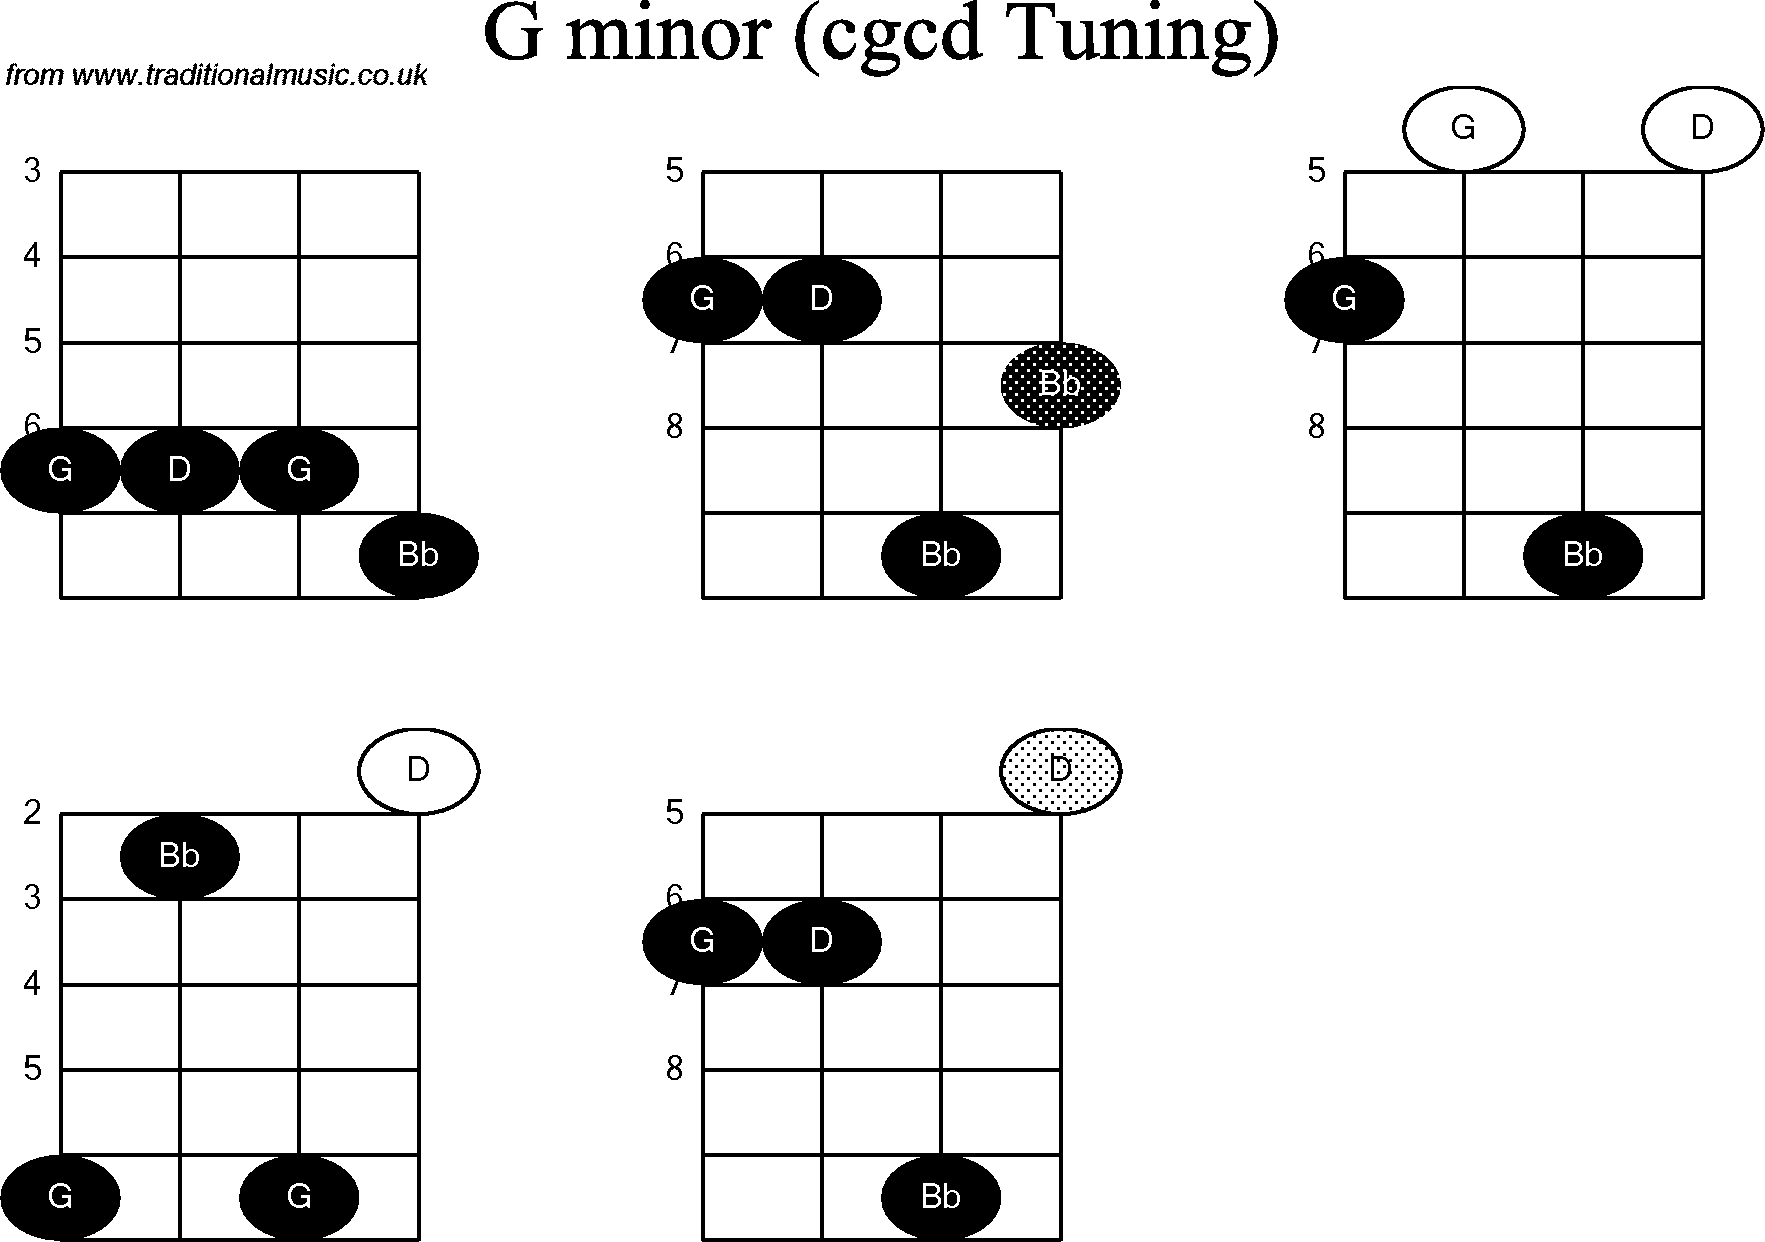 Chord diagrams for: Banjo(Double C) G Minor